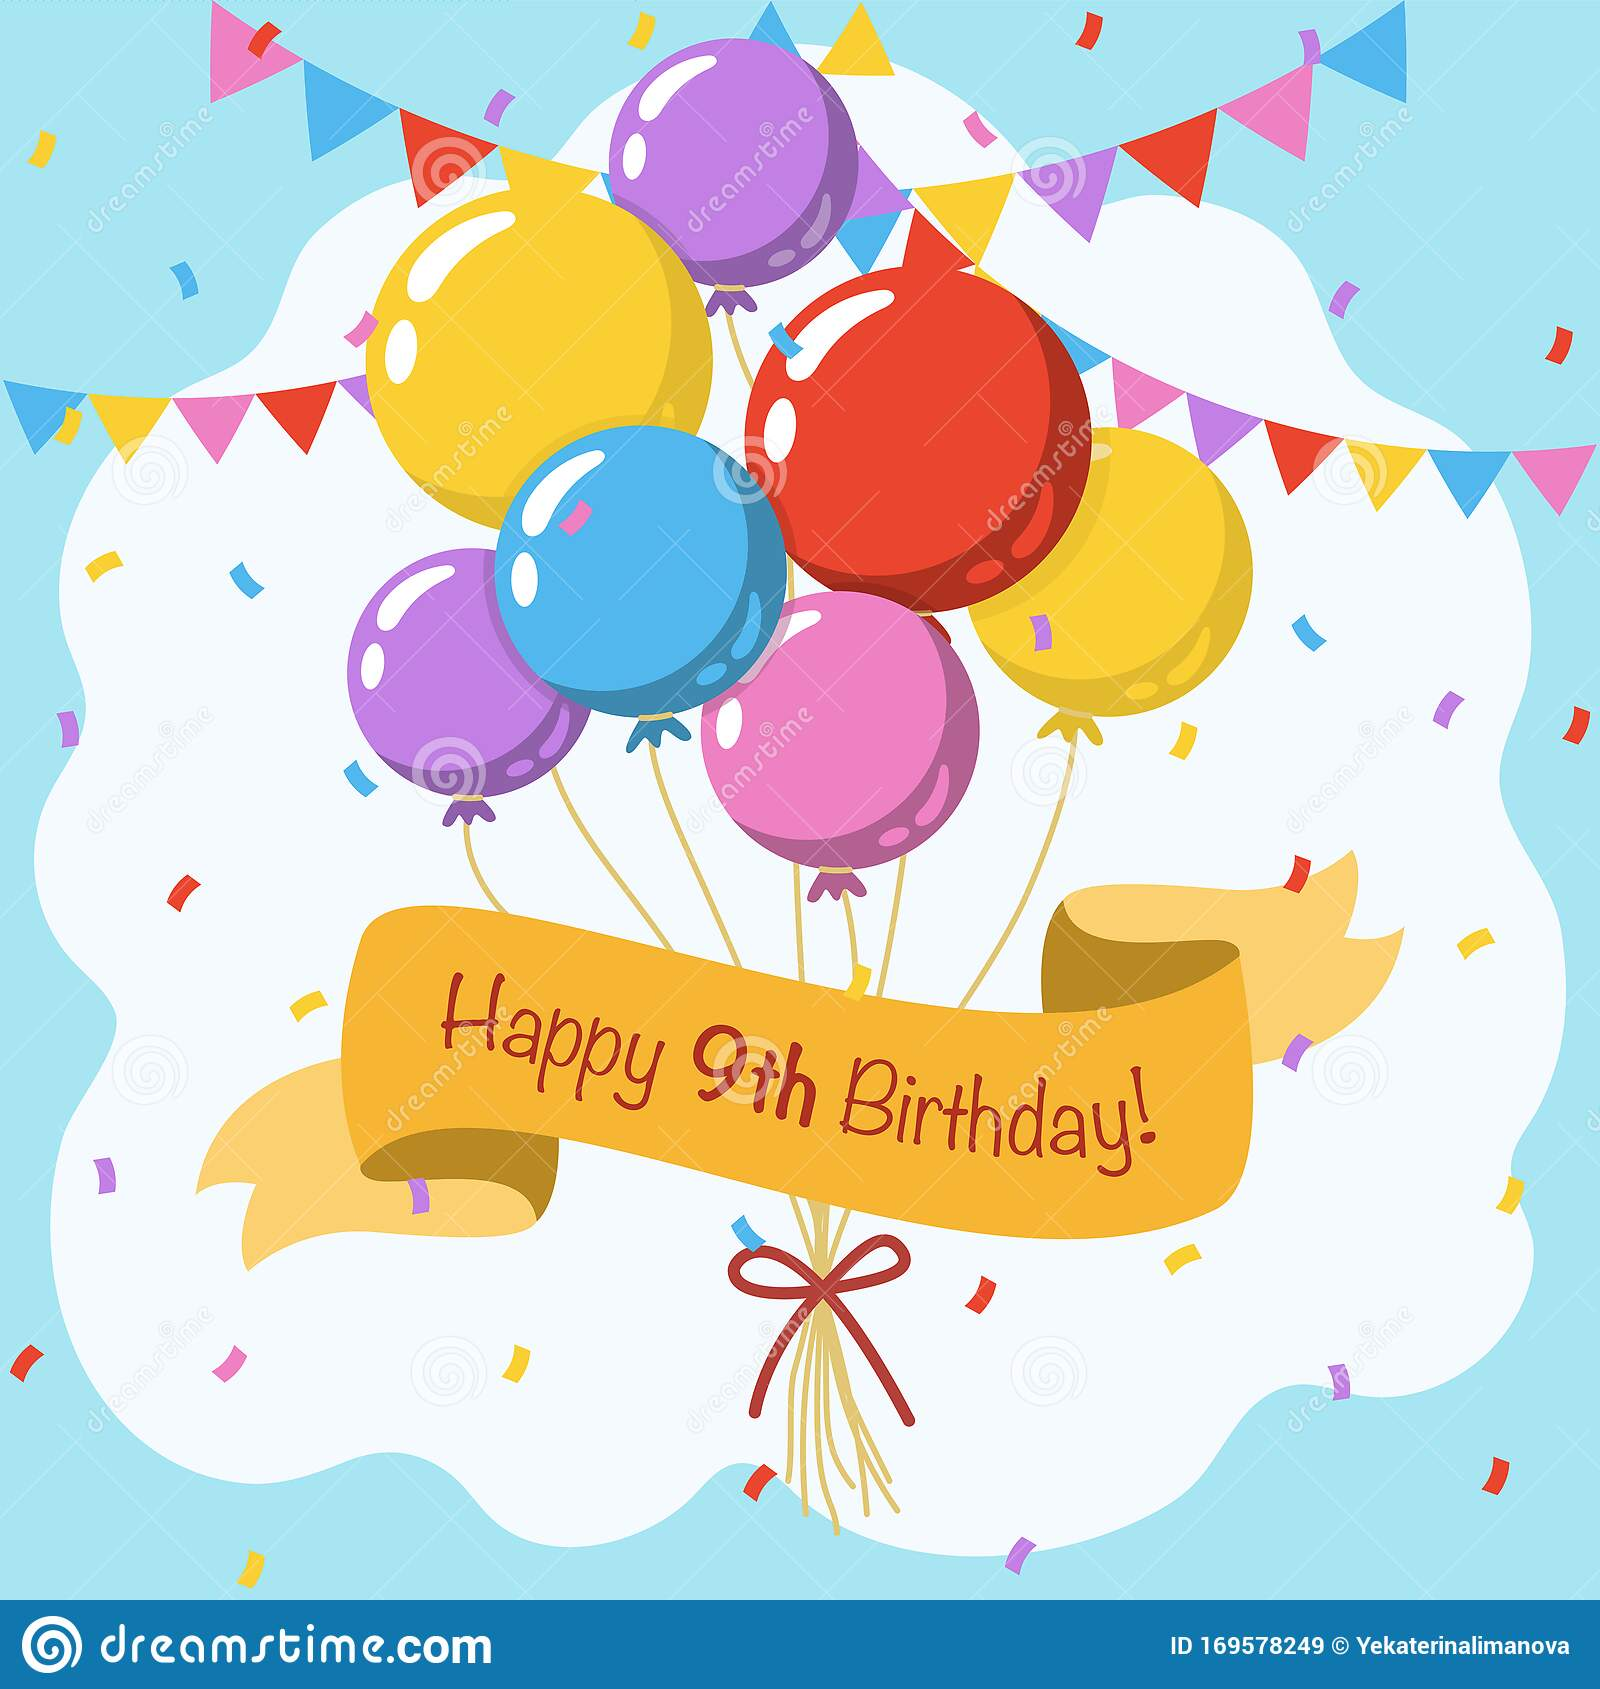 Happy 9th Birthday Colorful Vector Illustration Greeting Card Stock Vector Illustration Of Balloons Ceremony 169578249